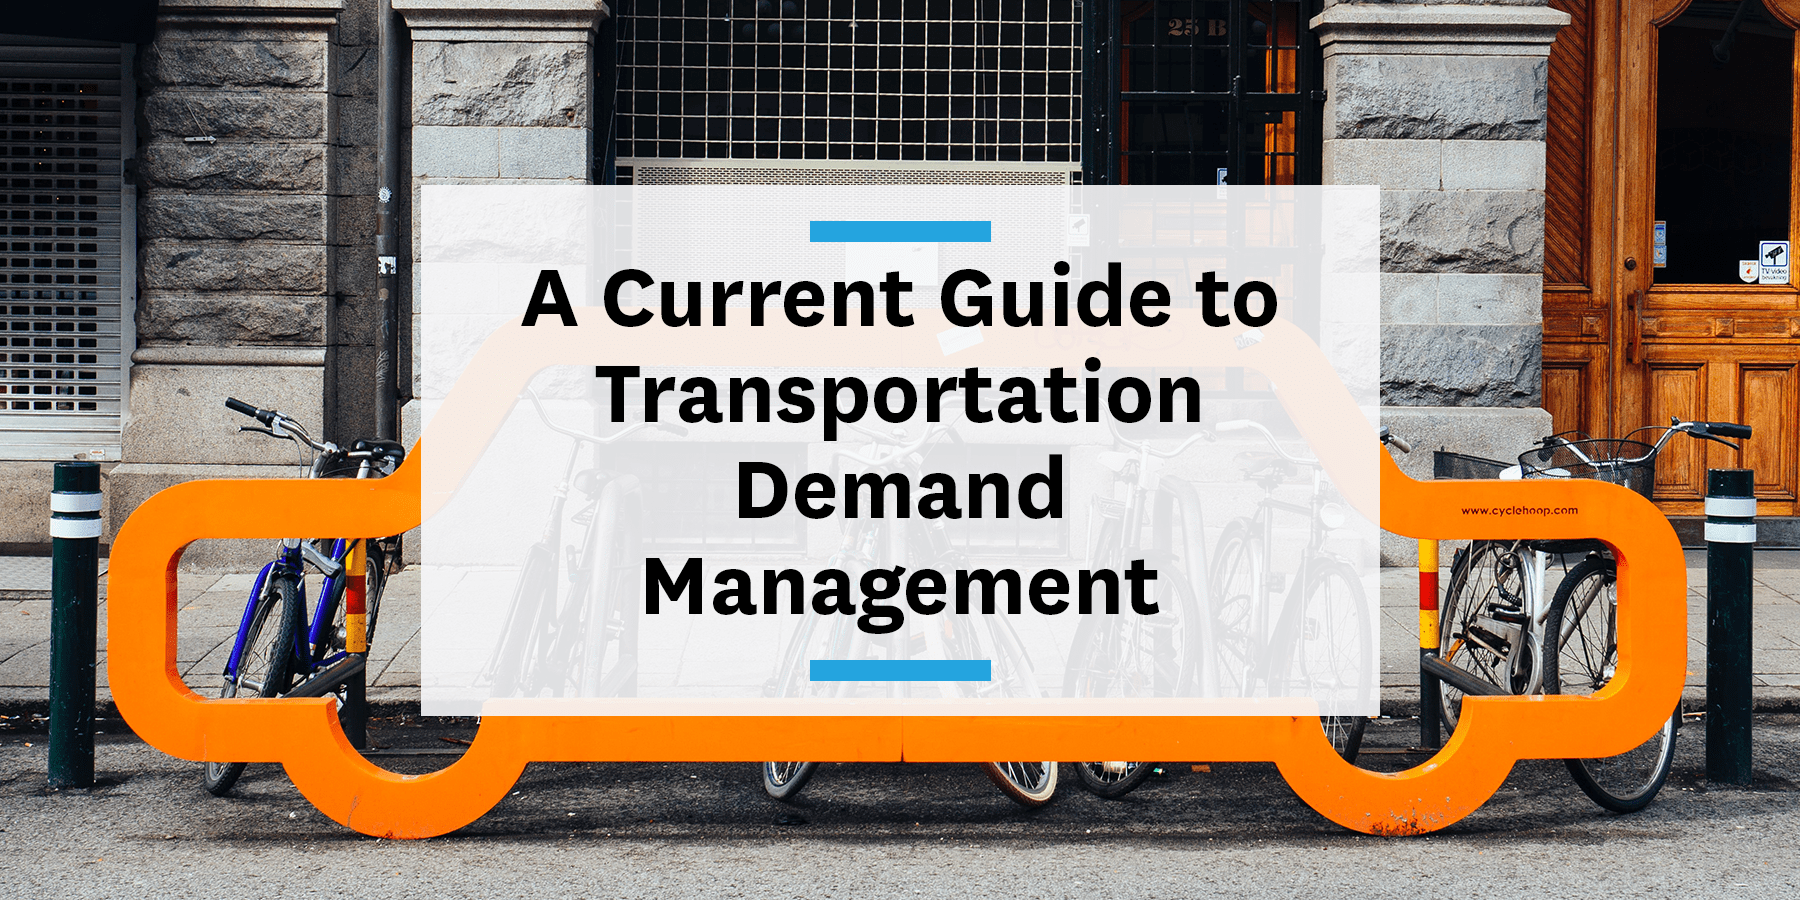 A current guide to transportation demand management